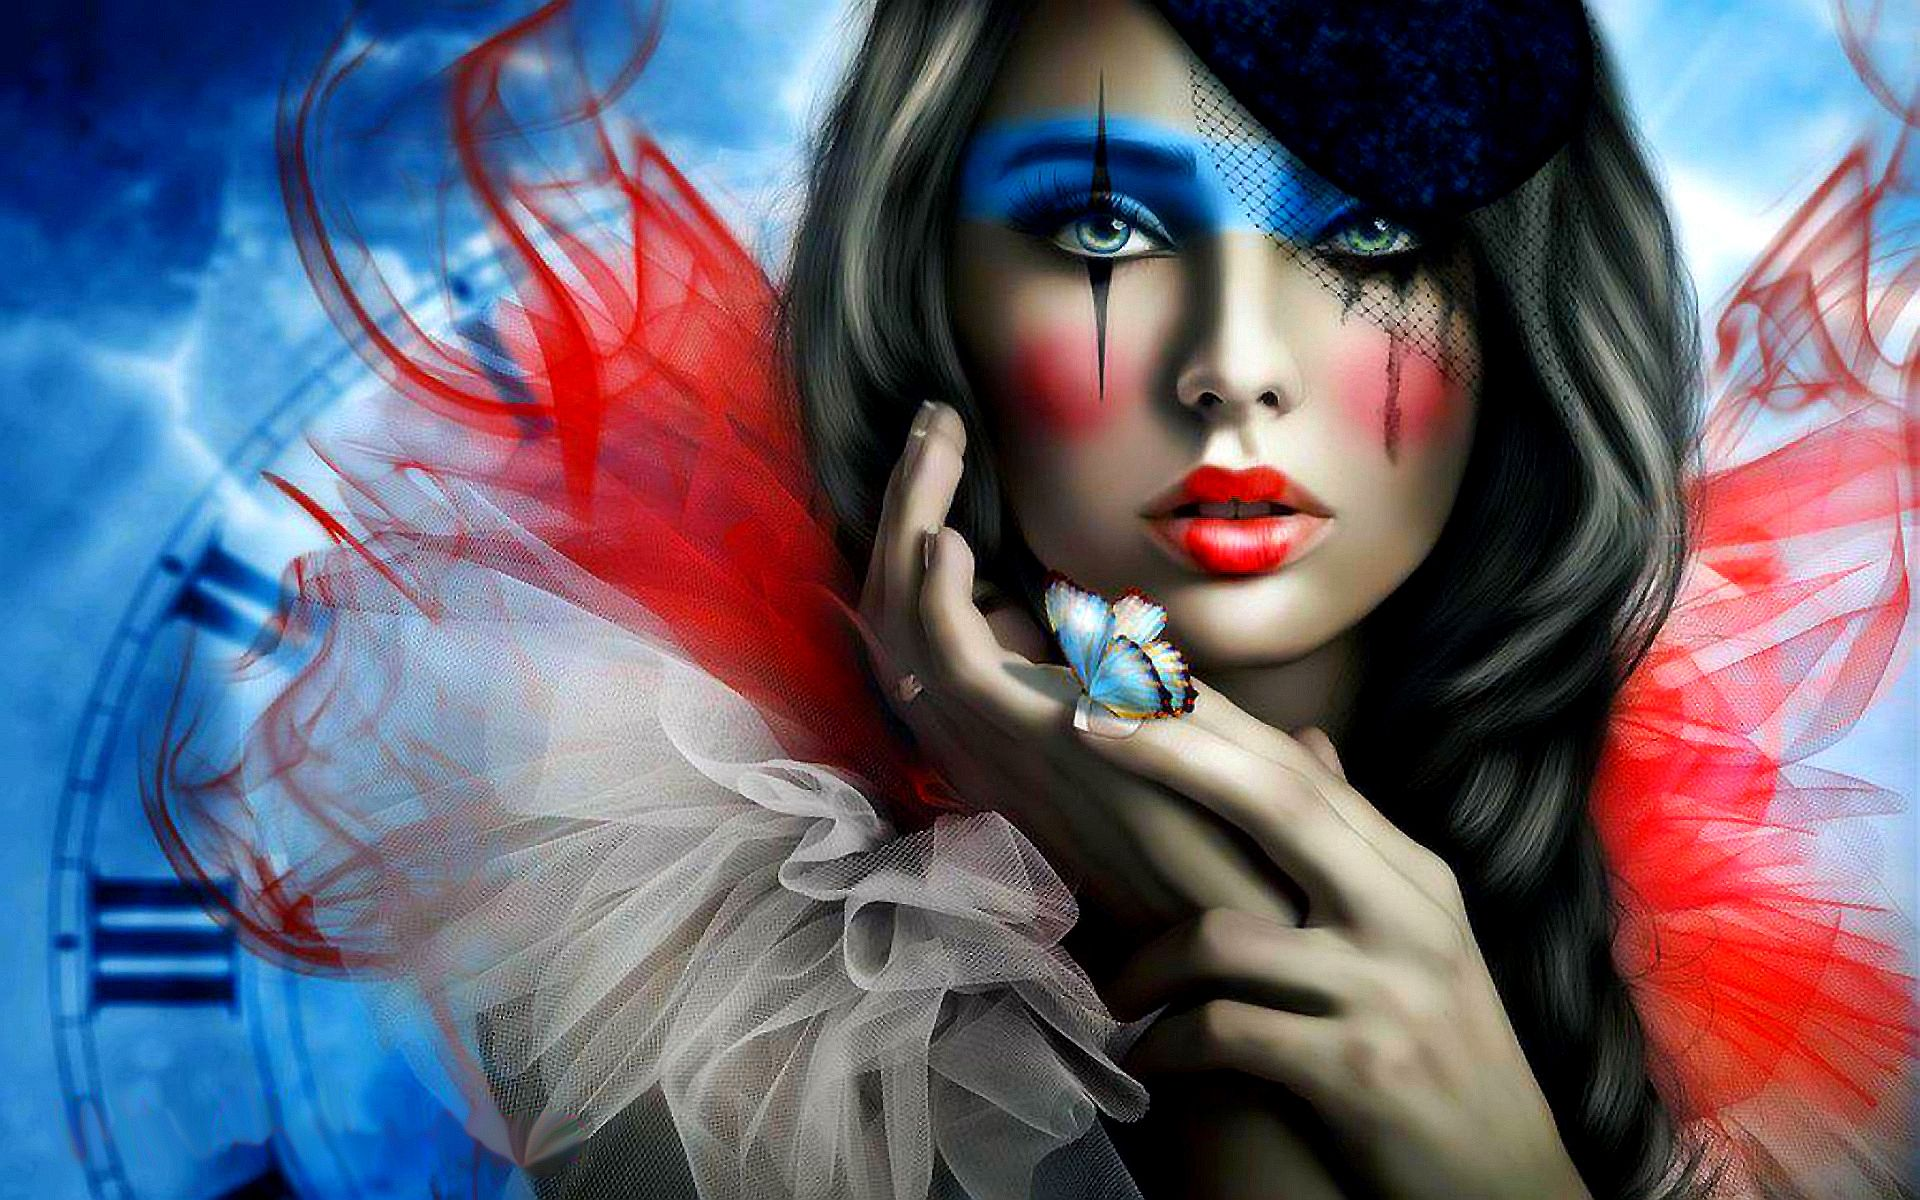 Sad Clown Full HD Wallpaper and Background Image ...